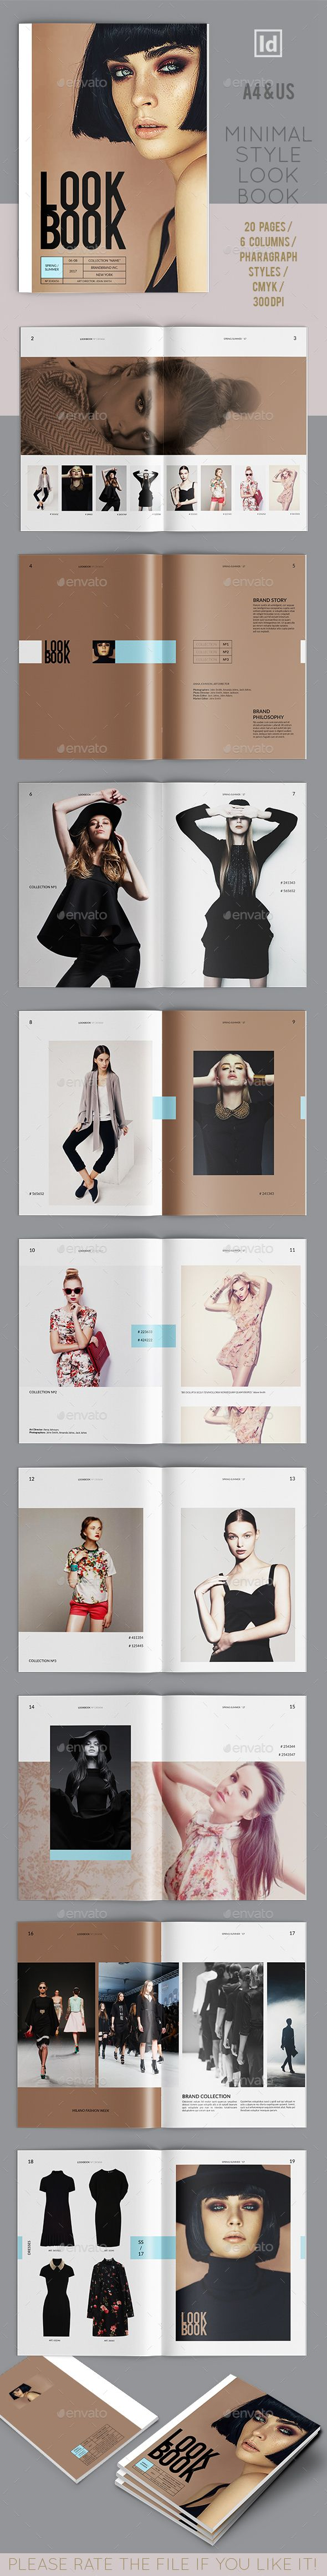 Lookbook Template InDesign INDD 20 Pages